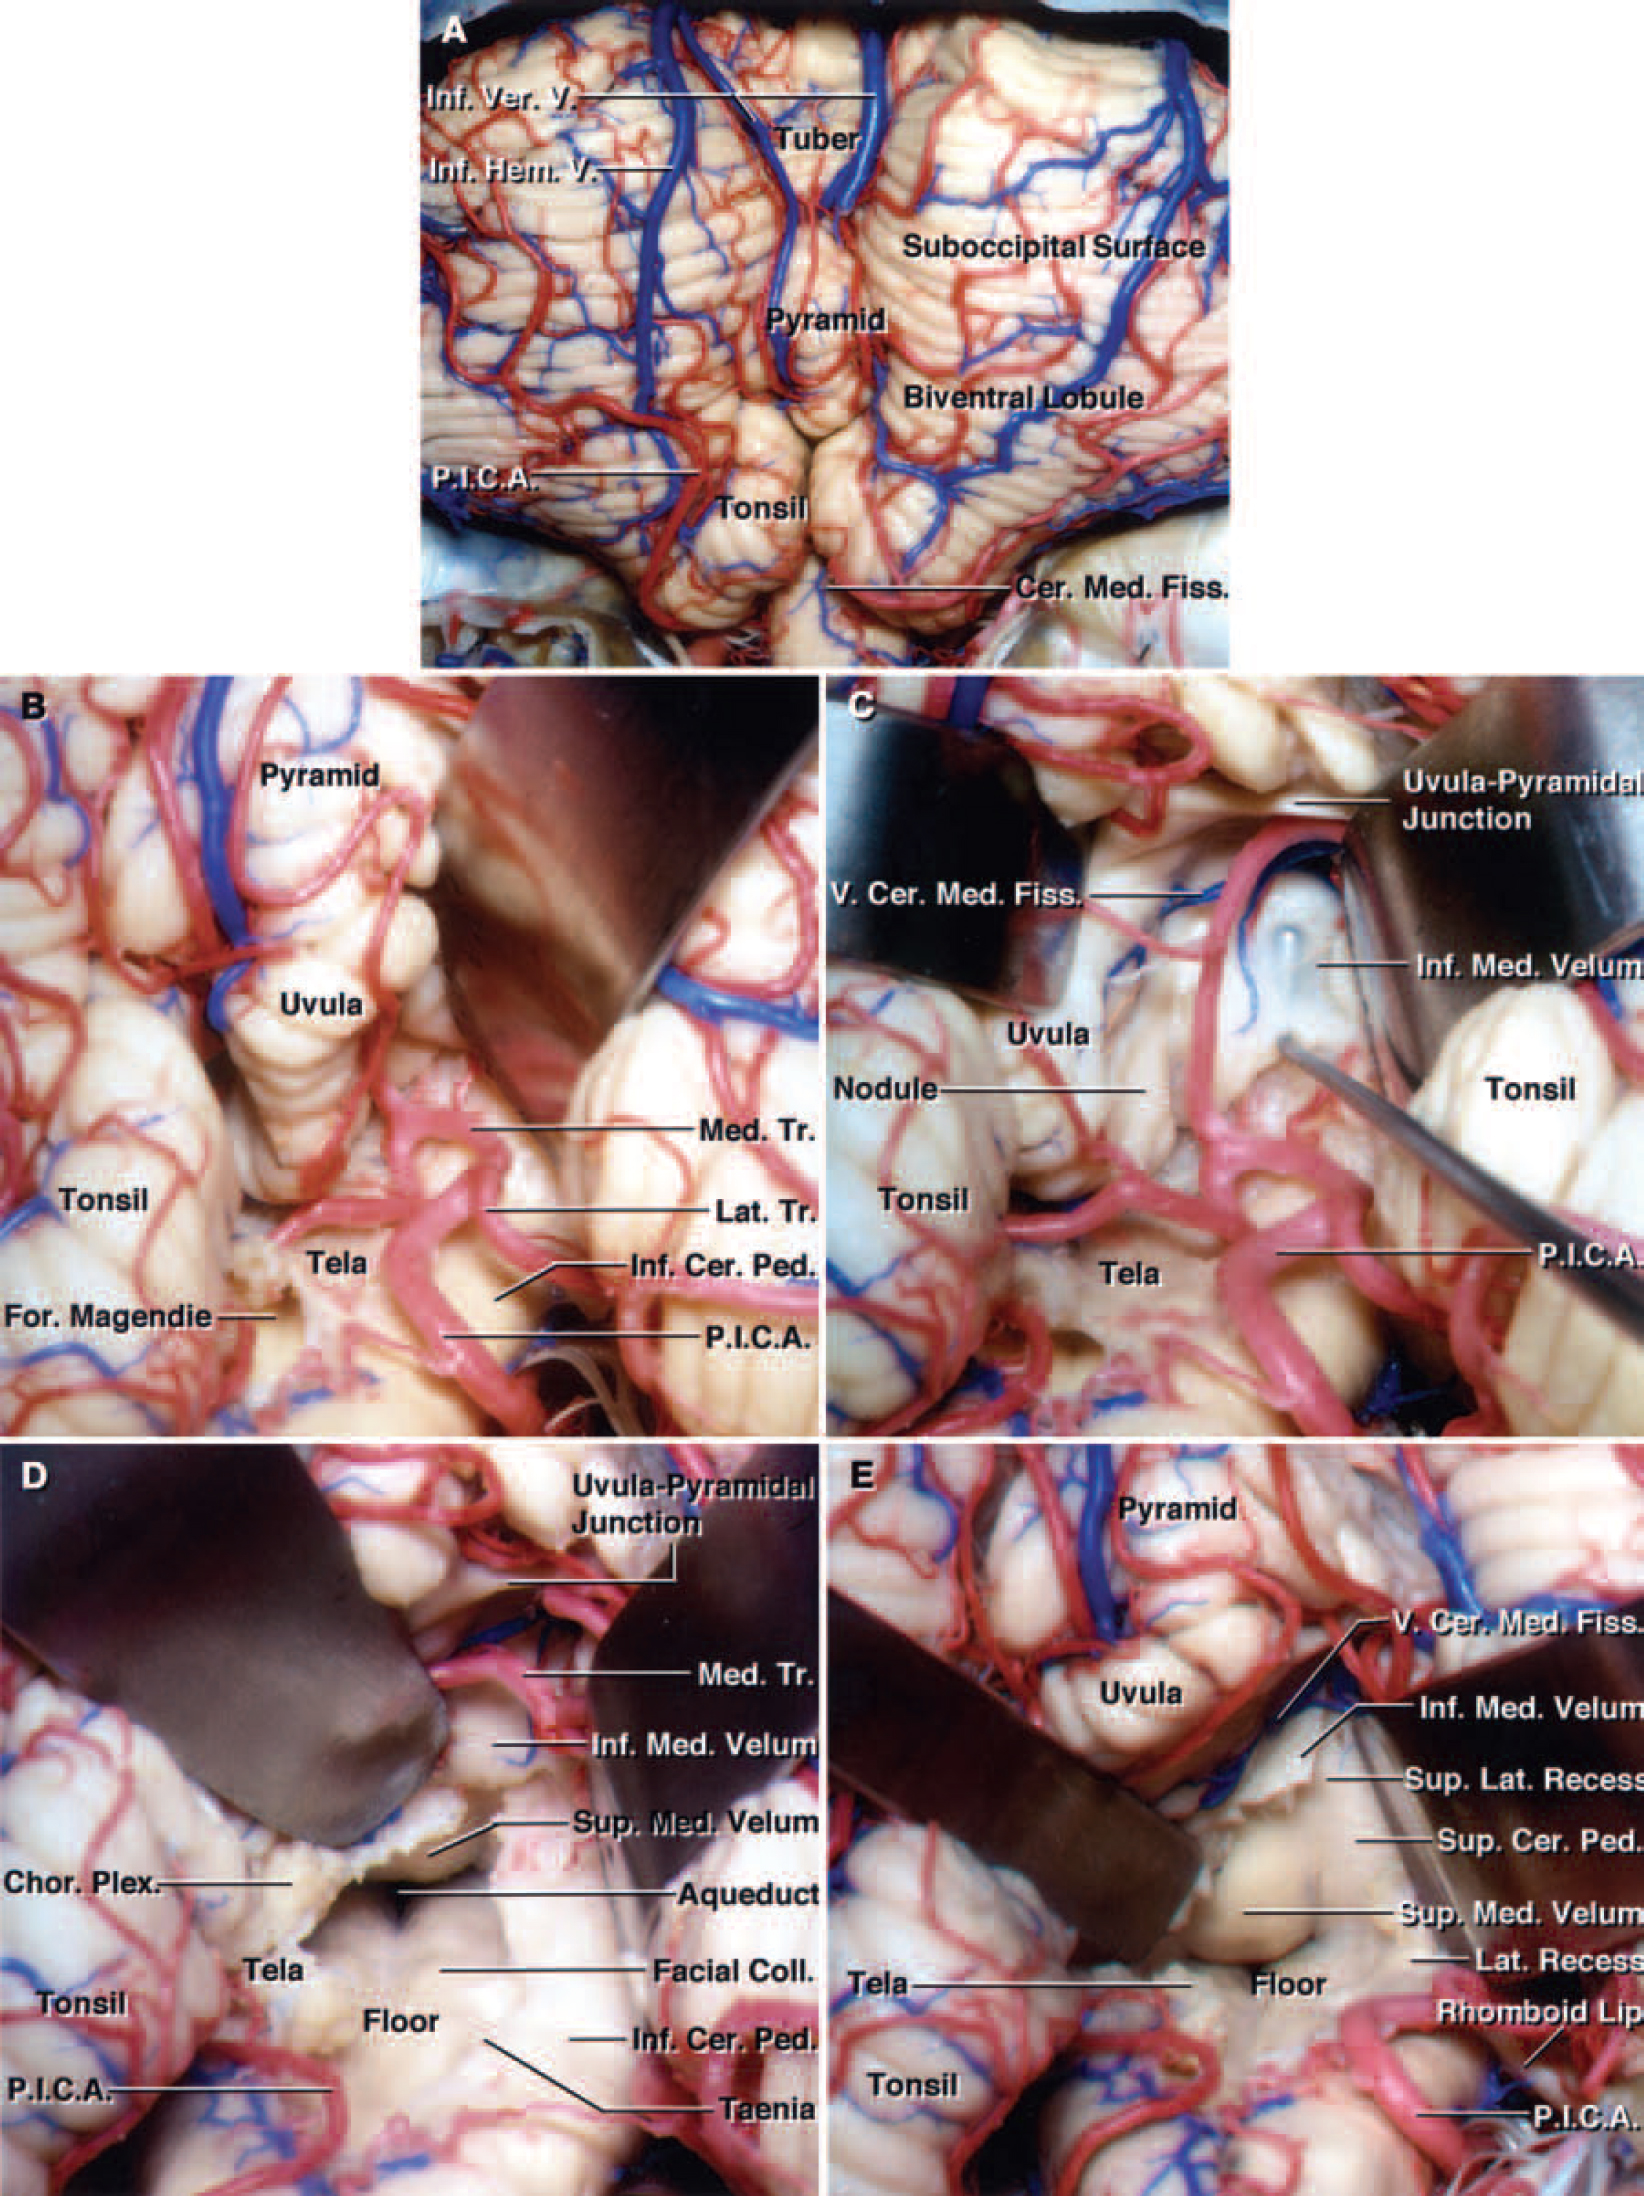 FIG. 6. Photographs of a cadaveric brain specimen showing the telovelar approach to the fourth ventricle. A: After the exposure of the tonsil and biventral lobule, the uvulotonsillar and medullotonsillar spaces on both sides are opened. B: The tonsil has been retracted laterally to expose the right uvulotonsillar space with special attention directed to preservation of the PICA and its bifurcation into the medial and lateral trunks. The PICA bifurcation is located near the inferior end of the uvulotonsillar space, close to the telovelar junction, in aproximately 30% of the specimens. C: The right tonsil has been retracted superolaterally and the uvula medially to expose the right uvulotonsillar space. The tip of a right-angled nerve hook has been placed beneath to the inferior medullary velum in the superolateral recess. The tip of the hook can be seen through the thin inferior medullary velum. D: The uvula has been retracted superomedially and the right tonsil superolaterally to achieve maximum visualization. The PICA bifurcation has been retracted laterally without sacrificing any of the branches of the vessel. If the PICA bifurcation is present at the uvulotonsillar space along the site of the telovelar incision, it is easier to retract it laterally before creating an incision along the tela than to retract it medially in most hemispheres. The incision along the tela choroidea in the right half of the roof has been extended to the telovelar junction. The entire floor of the fourth ventricle from the obex to the aqueduct has been exposed. E: The right half of the inferior medullary velum has been divided to expose the superolateral recess and maximize the exposure along the medial superior half of the roof and superior cerebellar peduncle. Opening the inferior medullary velum increases the exposure of the lower portion of the superior medullary velum near the fastigium. The vein of the cerebellomedullary fissure, which crosses the upper end of the inferior medulla